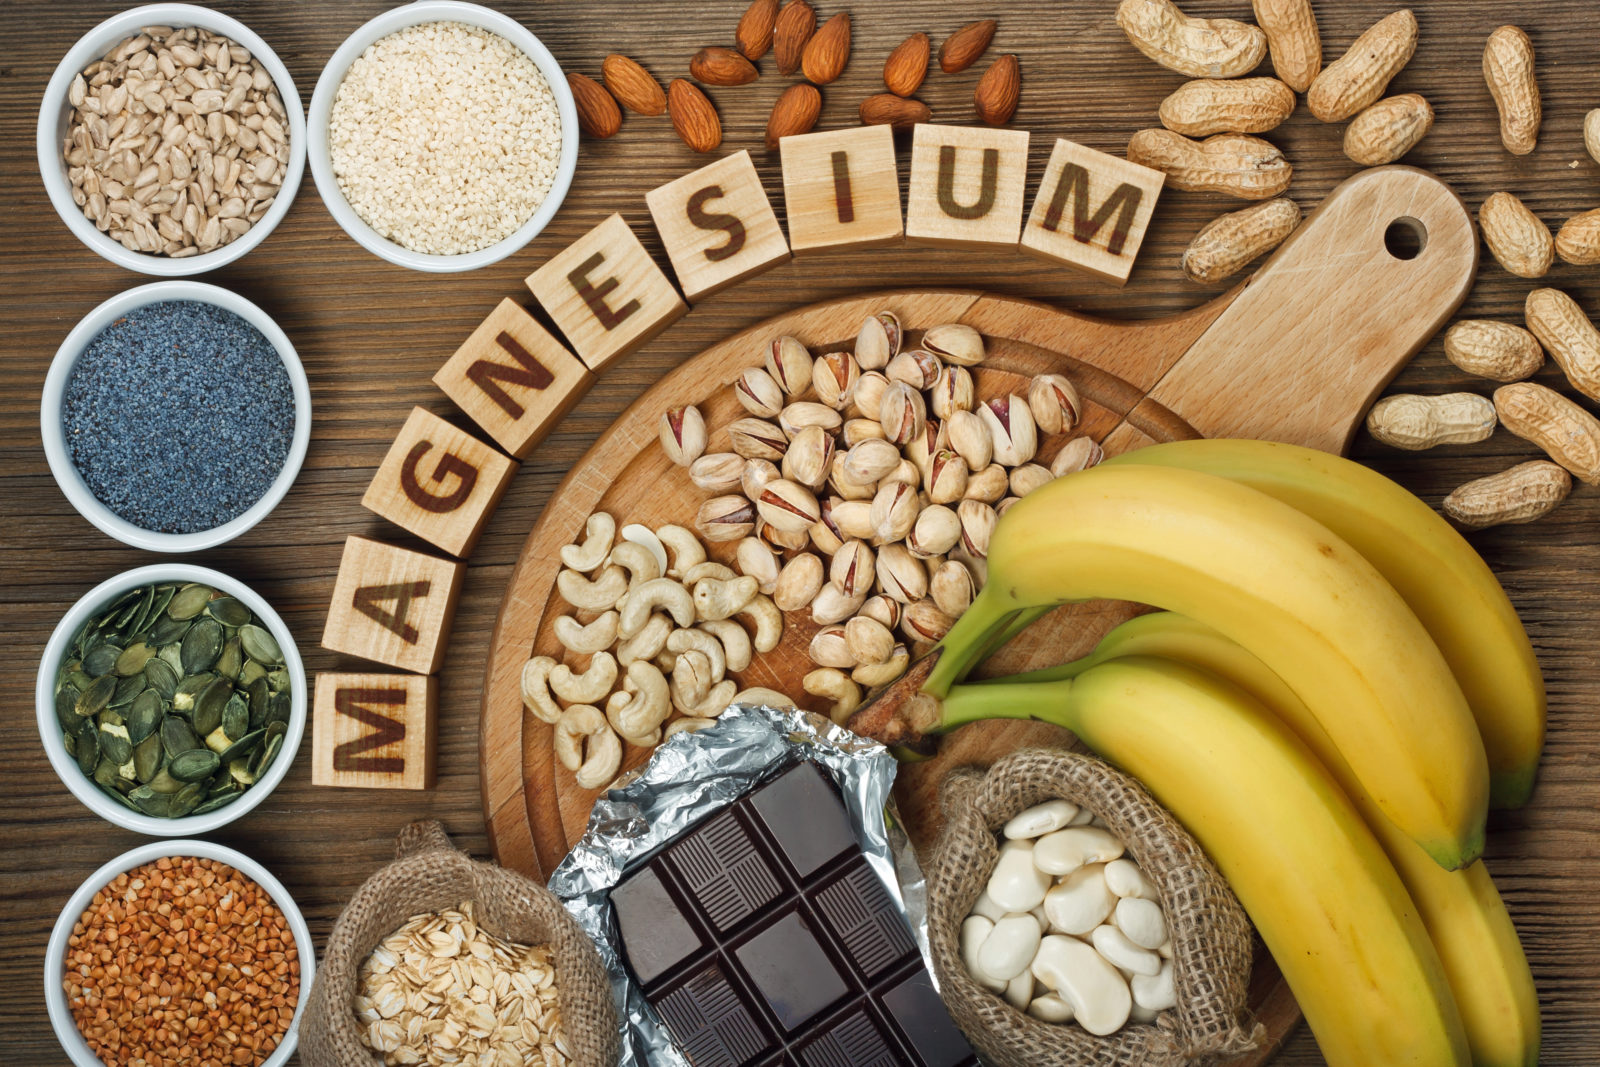 Natural sources of magnesium